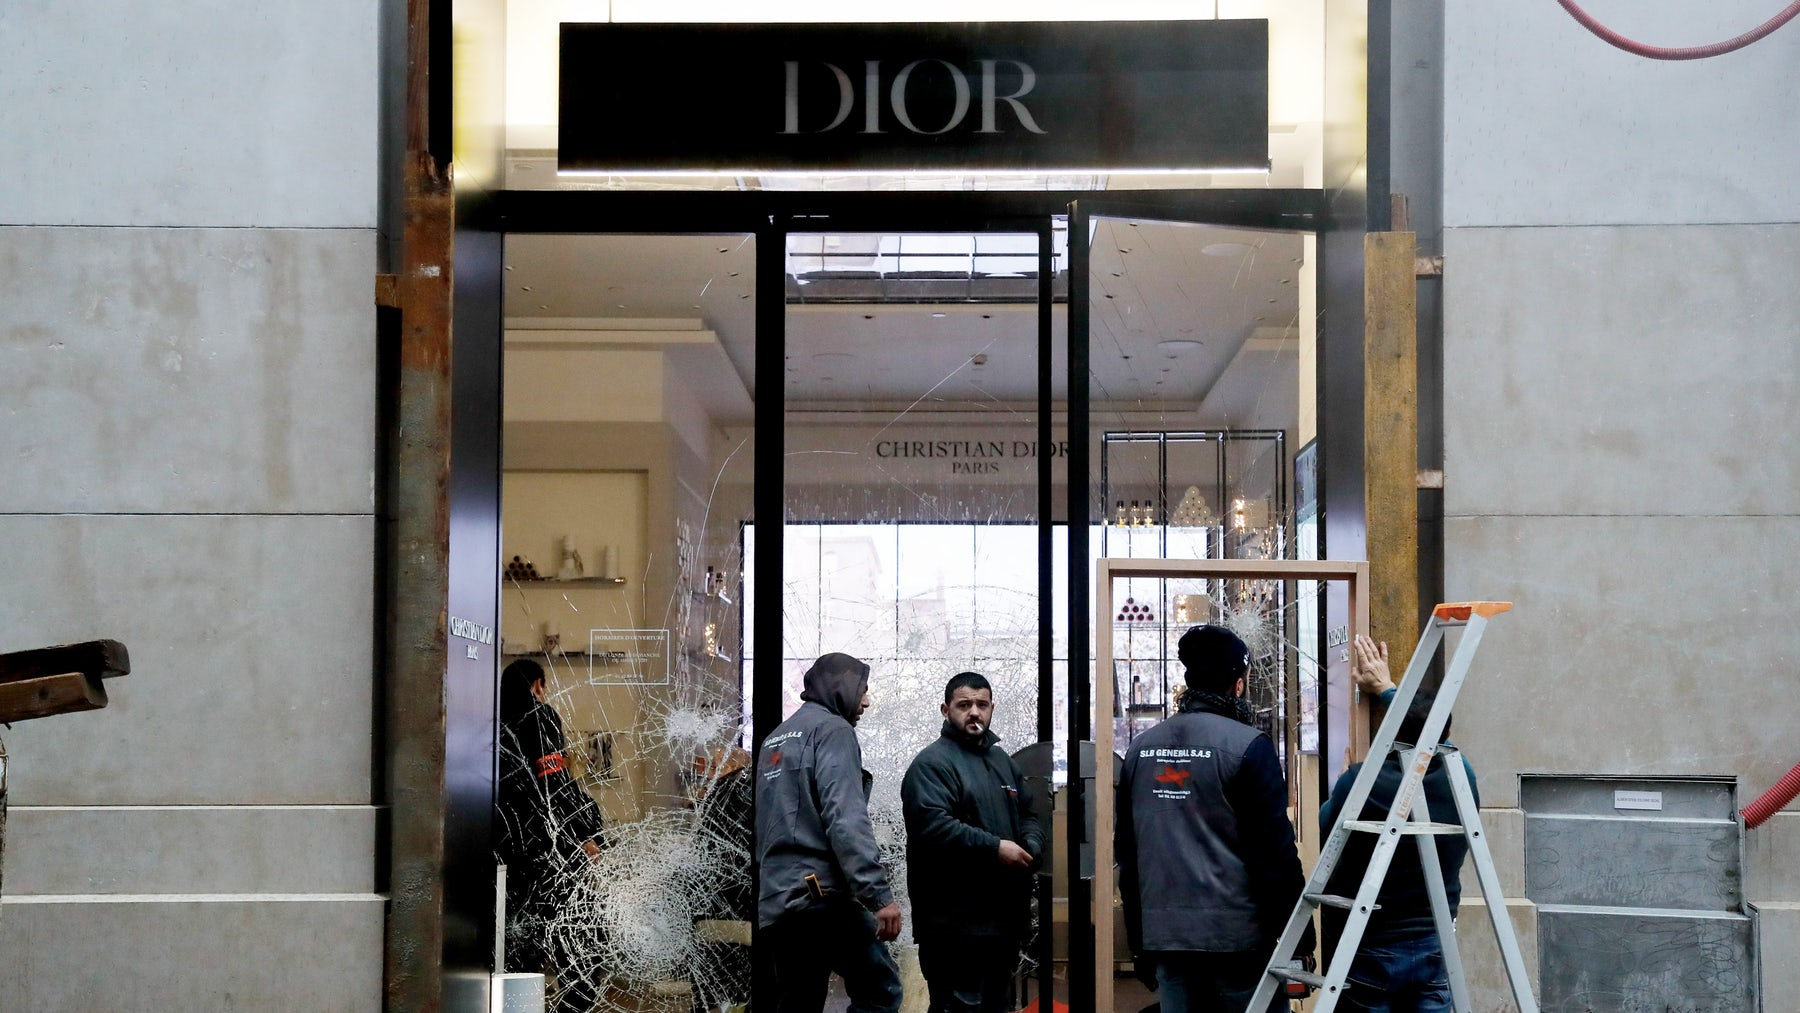 Workers repair the Dior shop window on the Champs-Elysees avenue in Paris after a rally by yellow vest protestors | Source: Getty Images